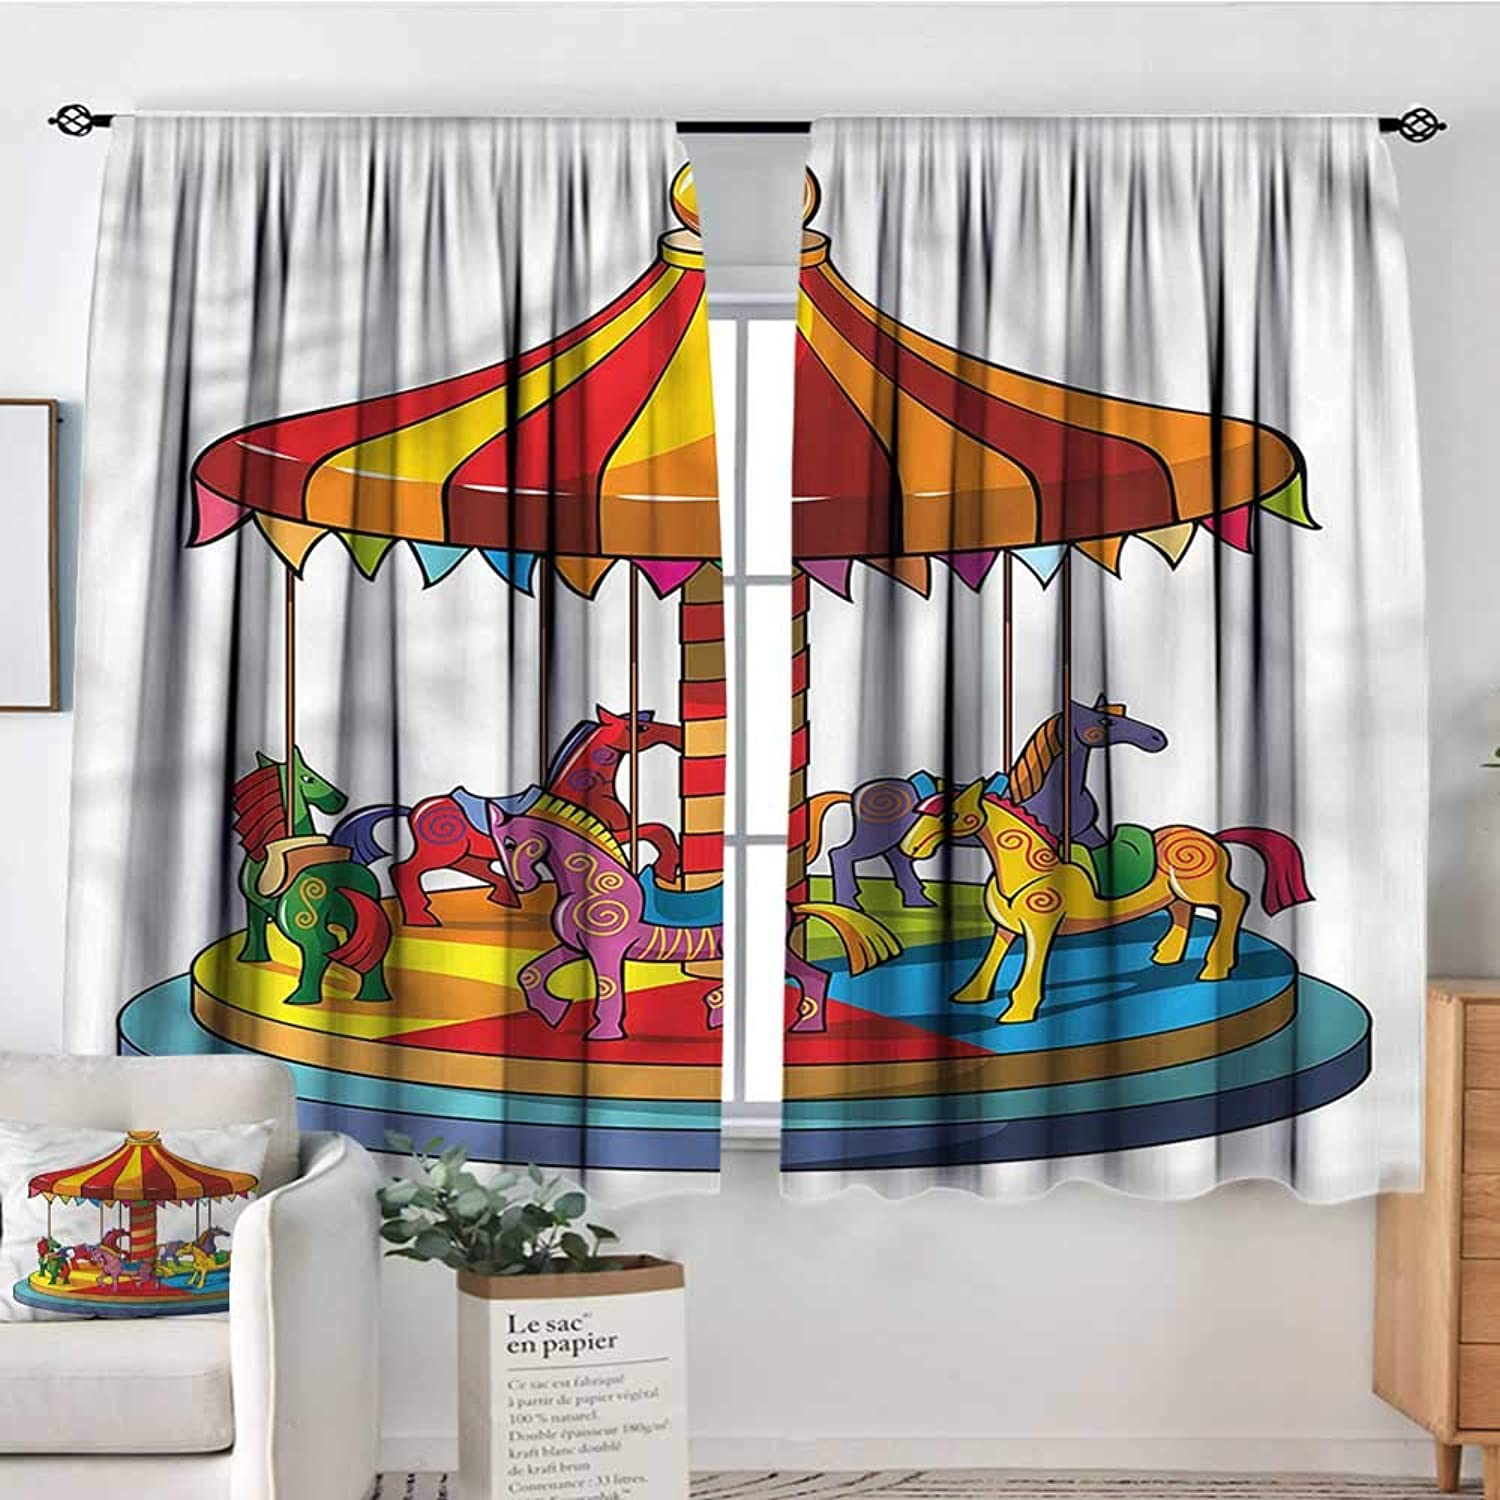 Sanring Kids,Backout Curtain Cartoon Carousel Horses Design 52 x63  Patterned Drape for Kids Bedroom